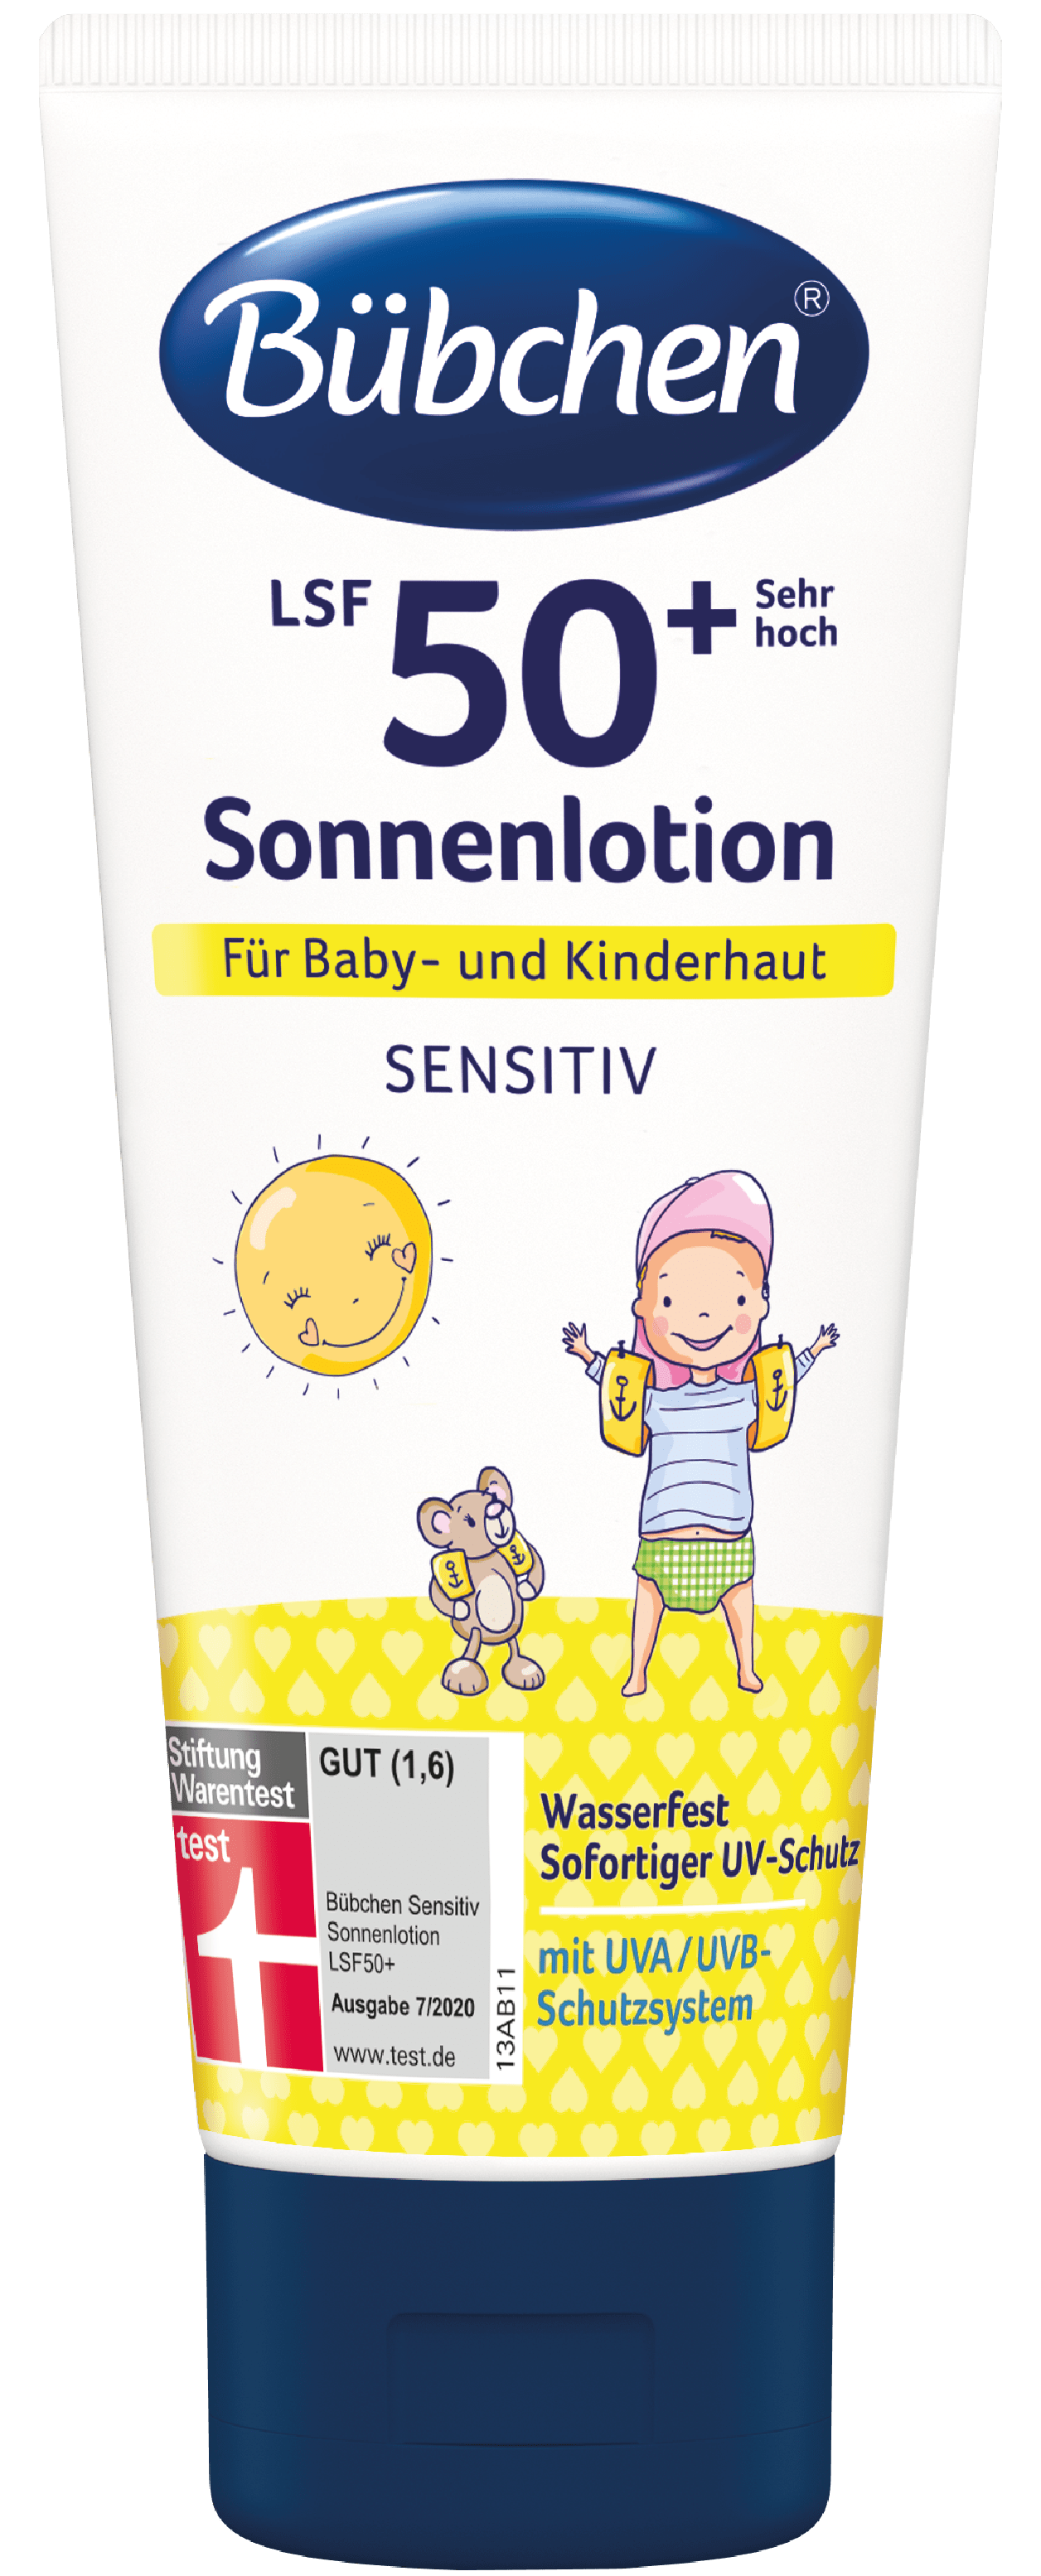 Sonnenlotion LSF50+